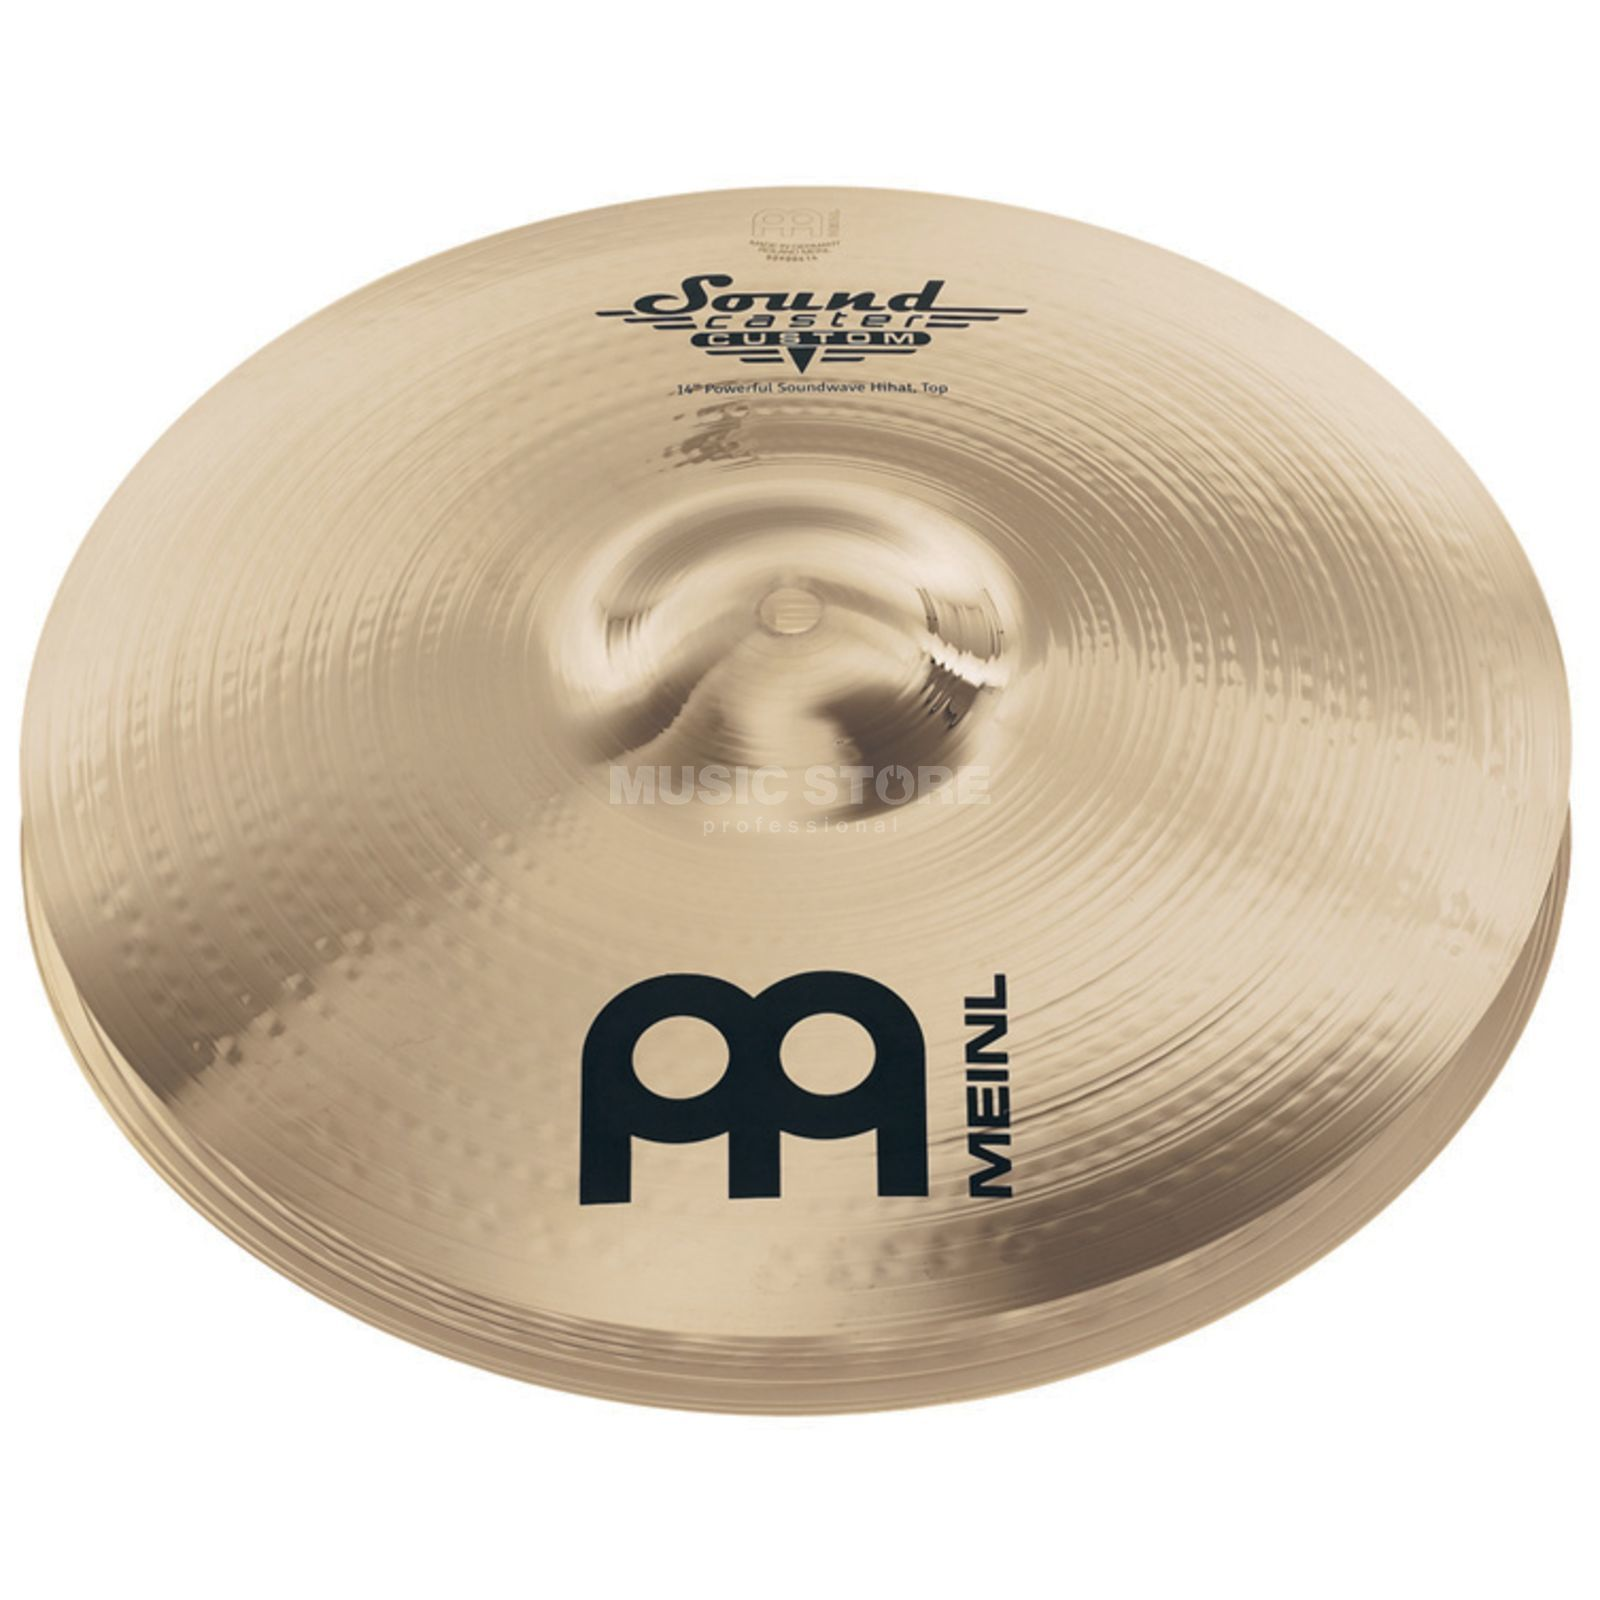 "Meinl SoundCaster Custom HiHat 14"" SC14PSW-B, Powerful, Soundwave Image du produit"